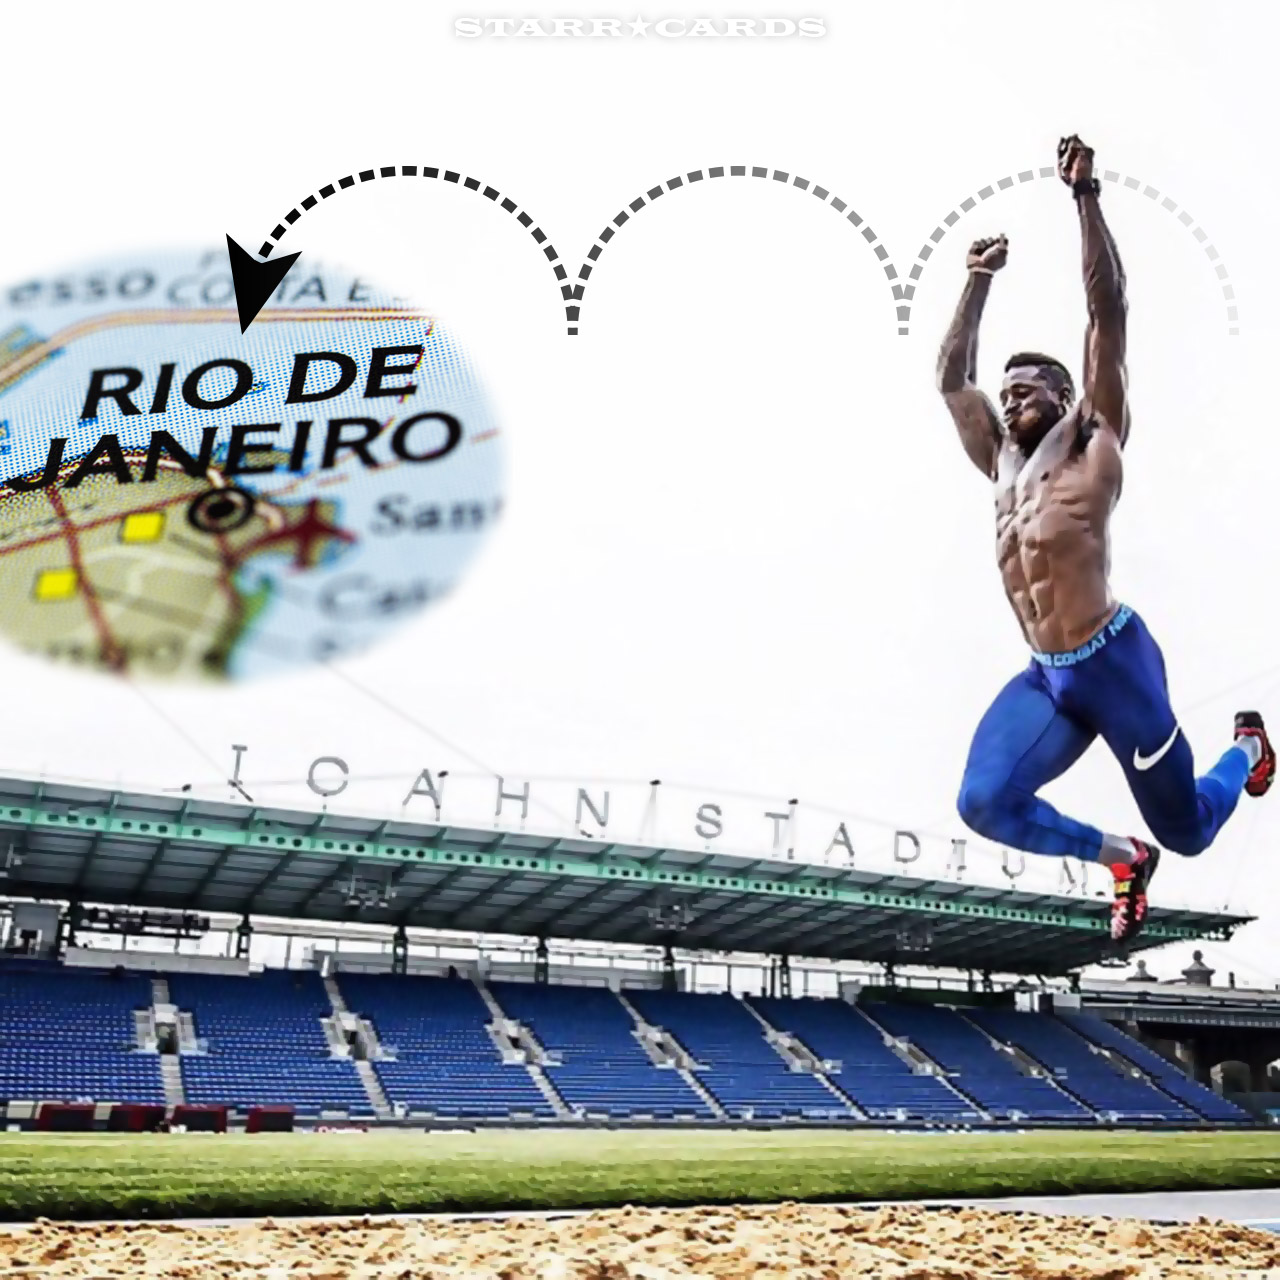 Triple jump to Rio with former New York Giants RB David Wilson